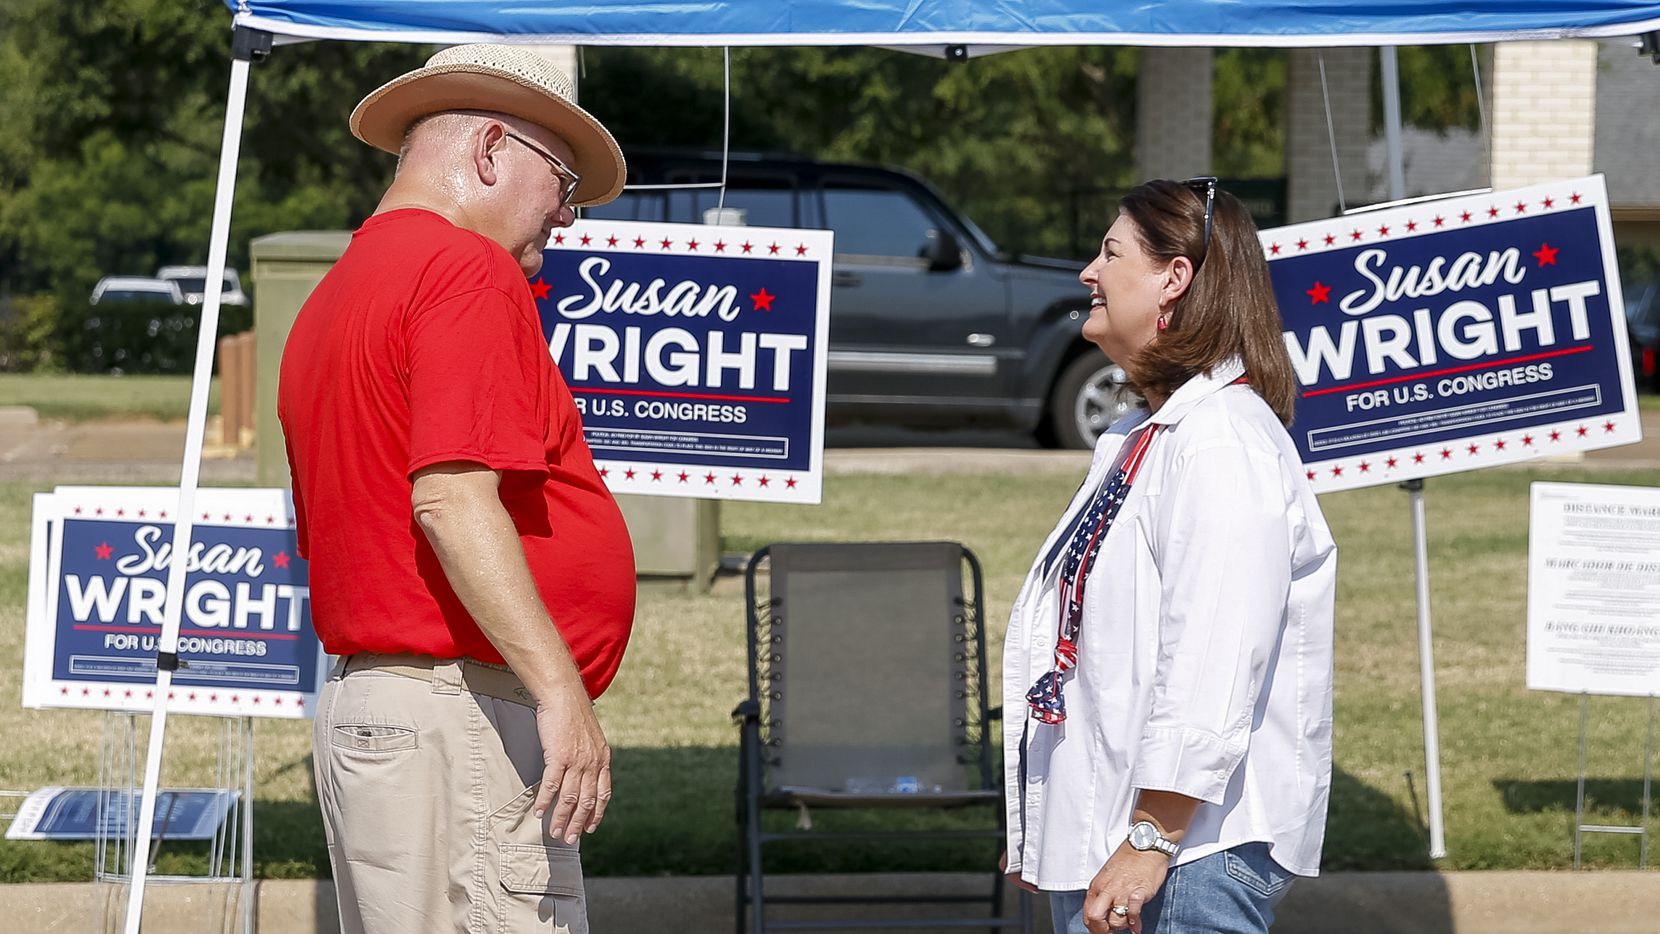 Susan Wright, Republican candidate for Texas' 6th Congressional District (right), speaks with Linton Davis of Arlington outside a polling location during early voting for a special runoff election on Thursday, July 22, 2021, in Arlington. (Elias Valverde II/The Dallas Morning News)